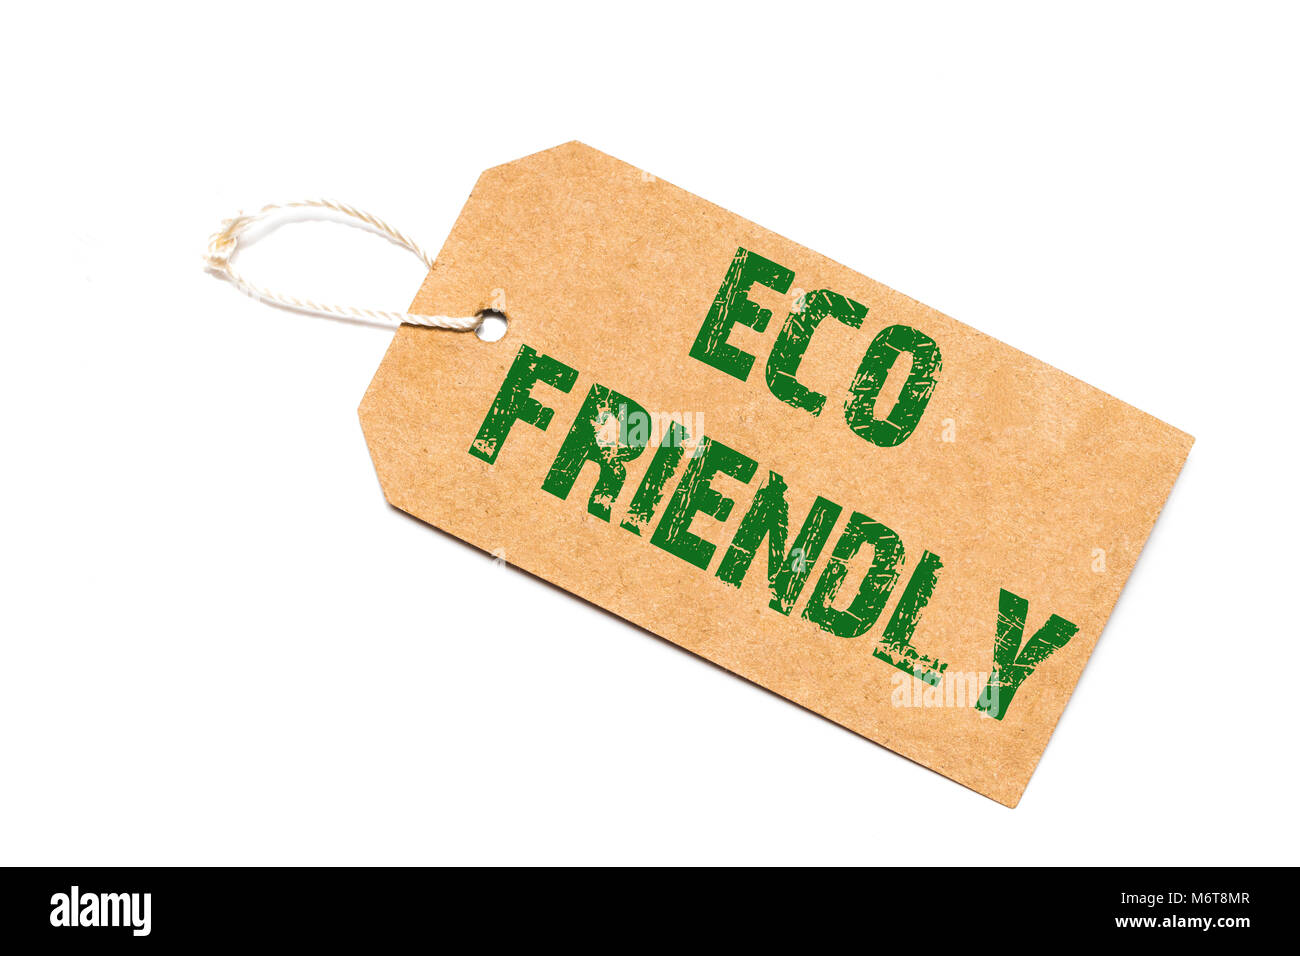 eco friendly sign a paper price tag on a white background - shopping concept. - Stock Image